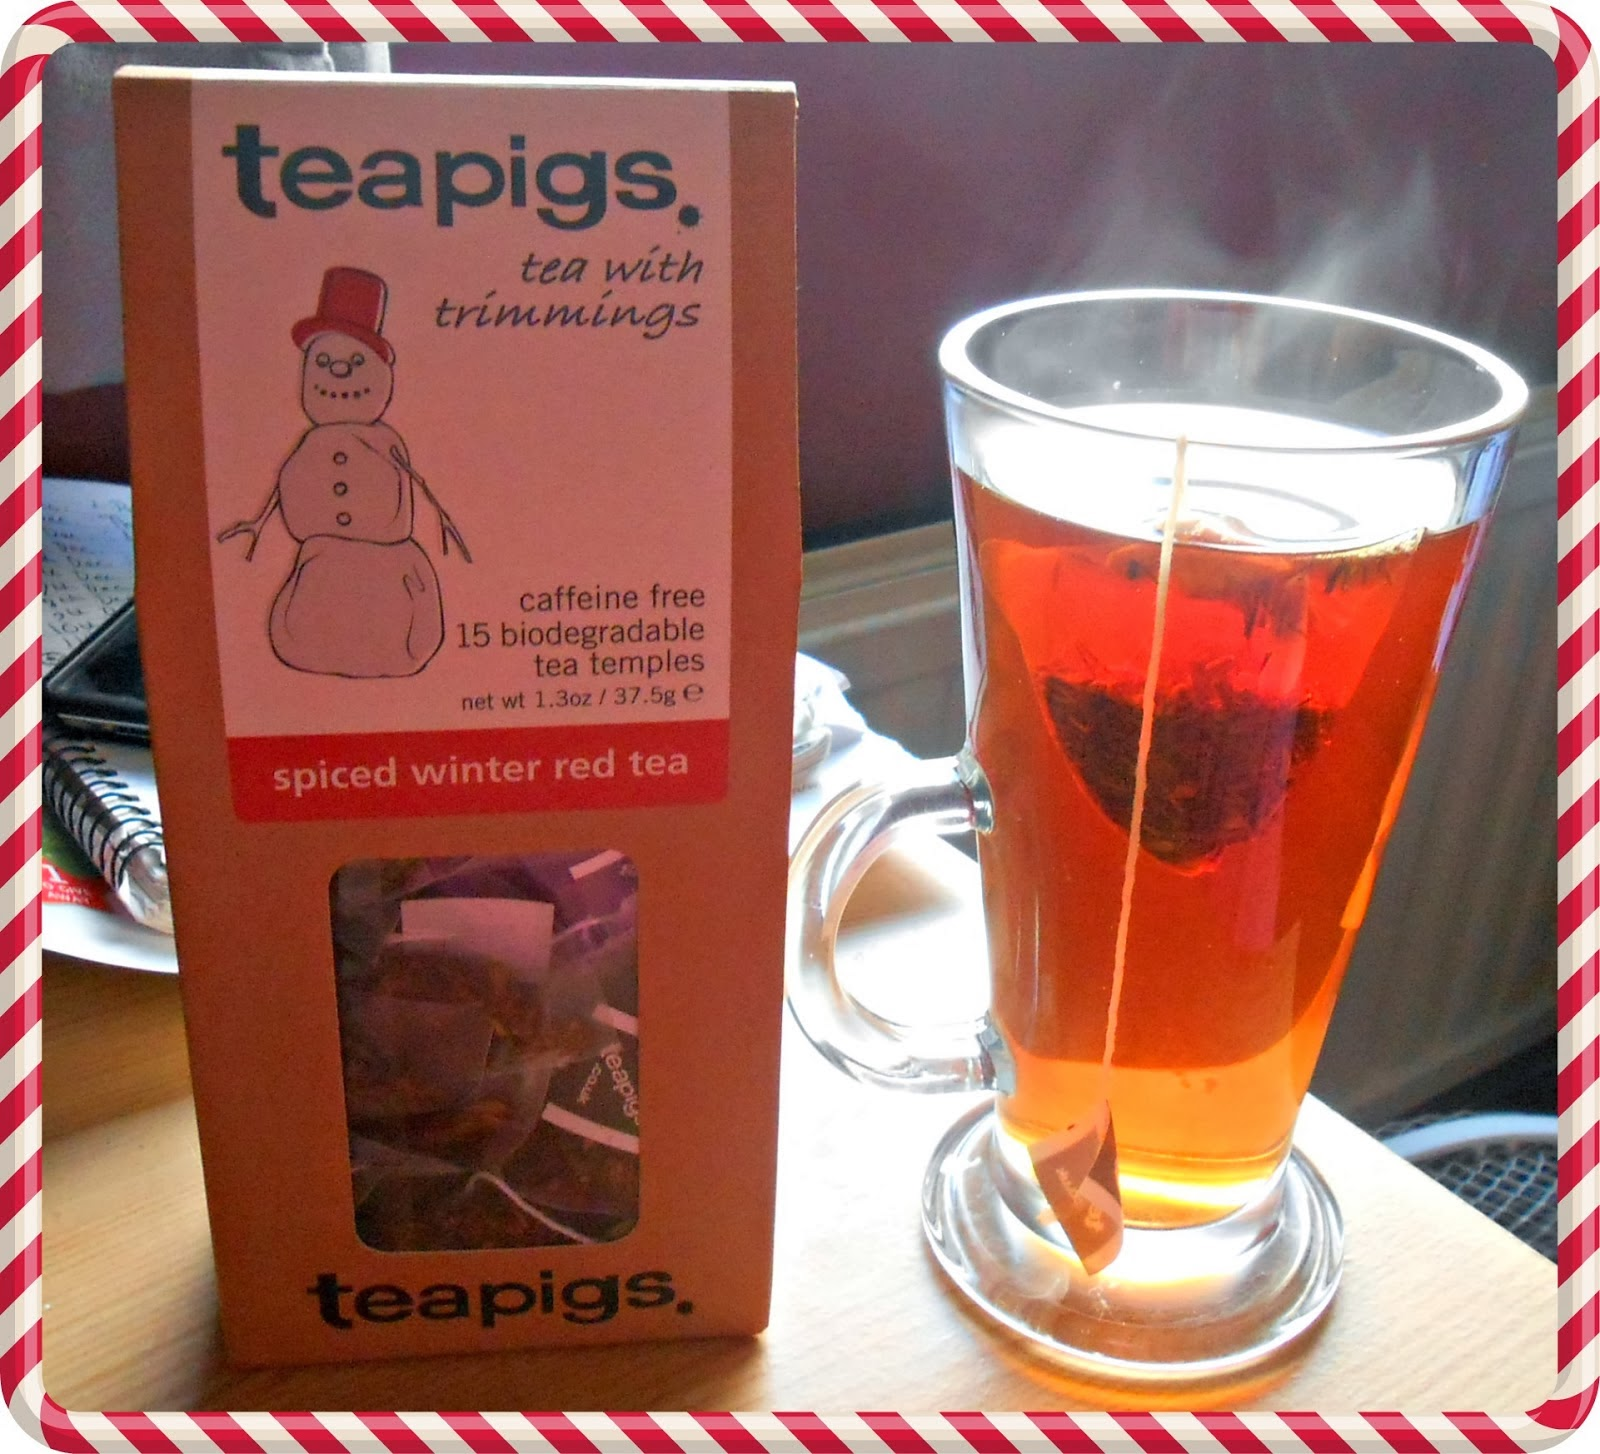 Teapigs Spiced Winter Festive Tea